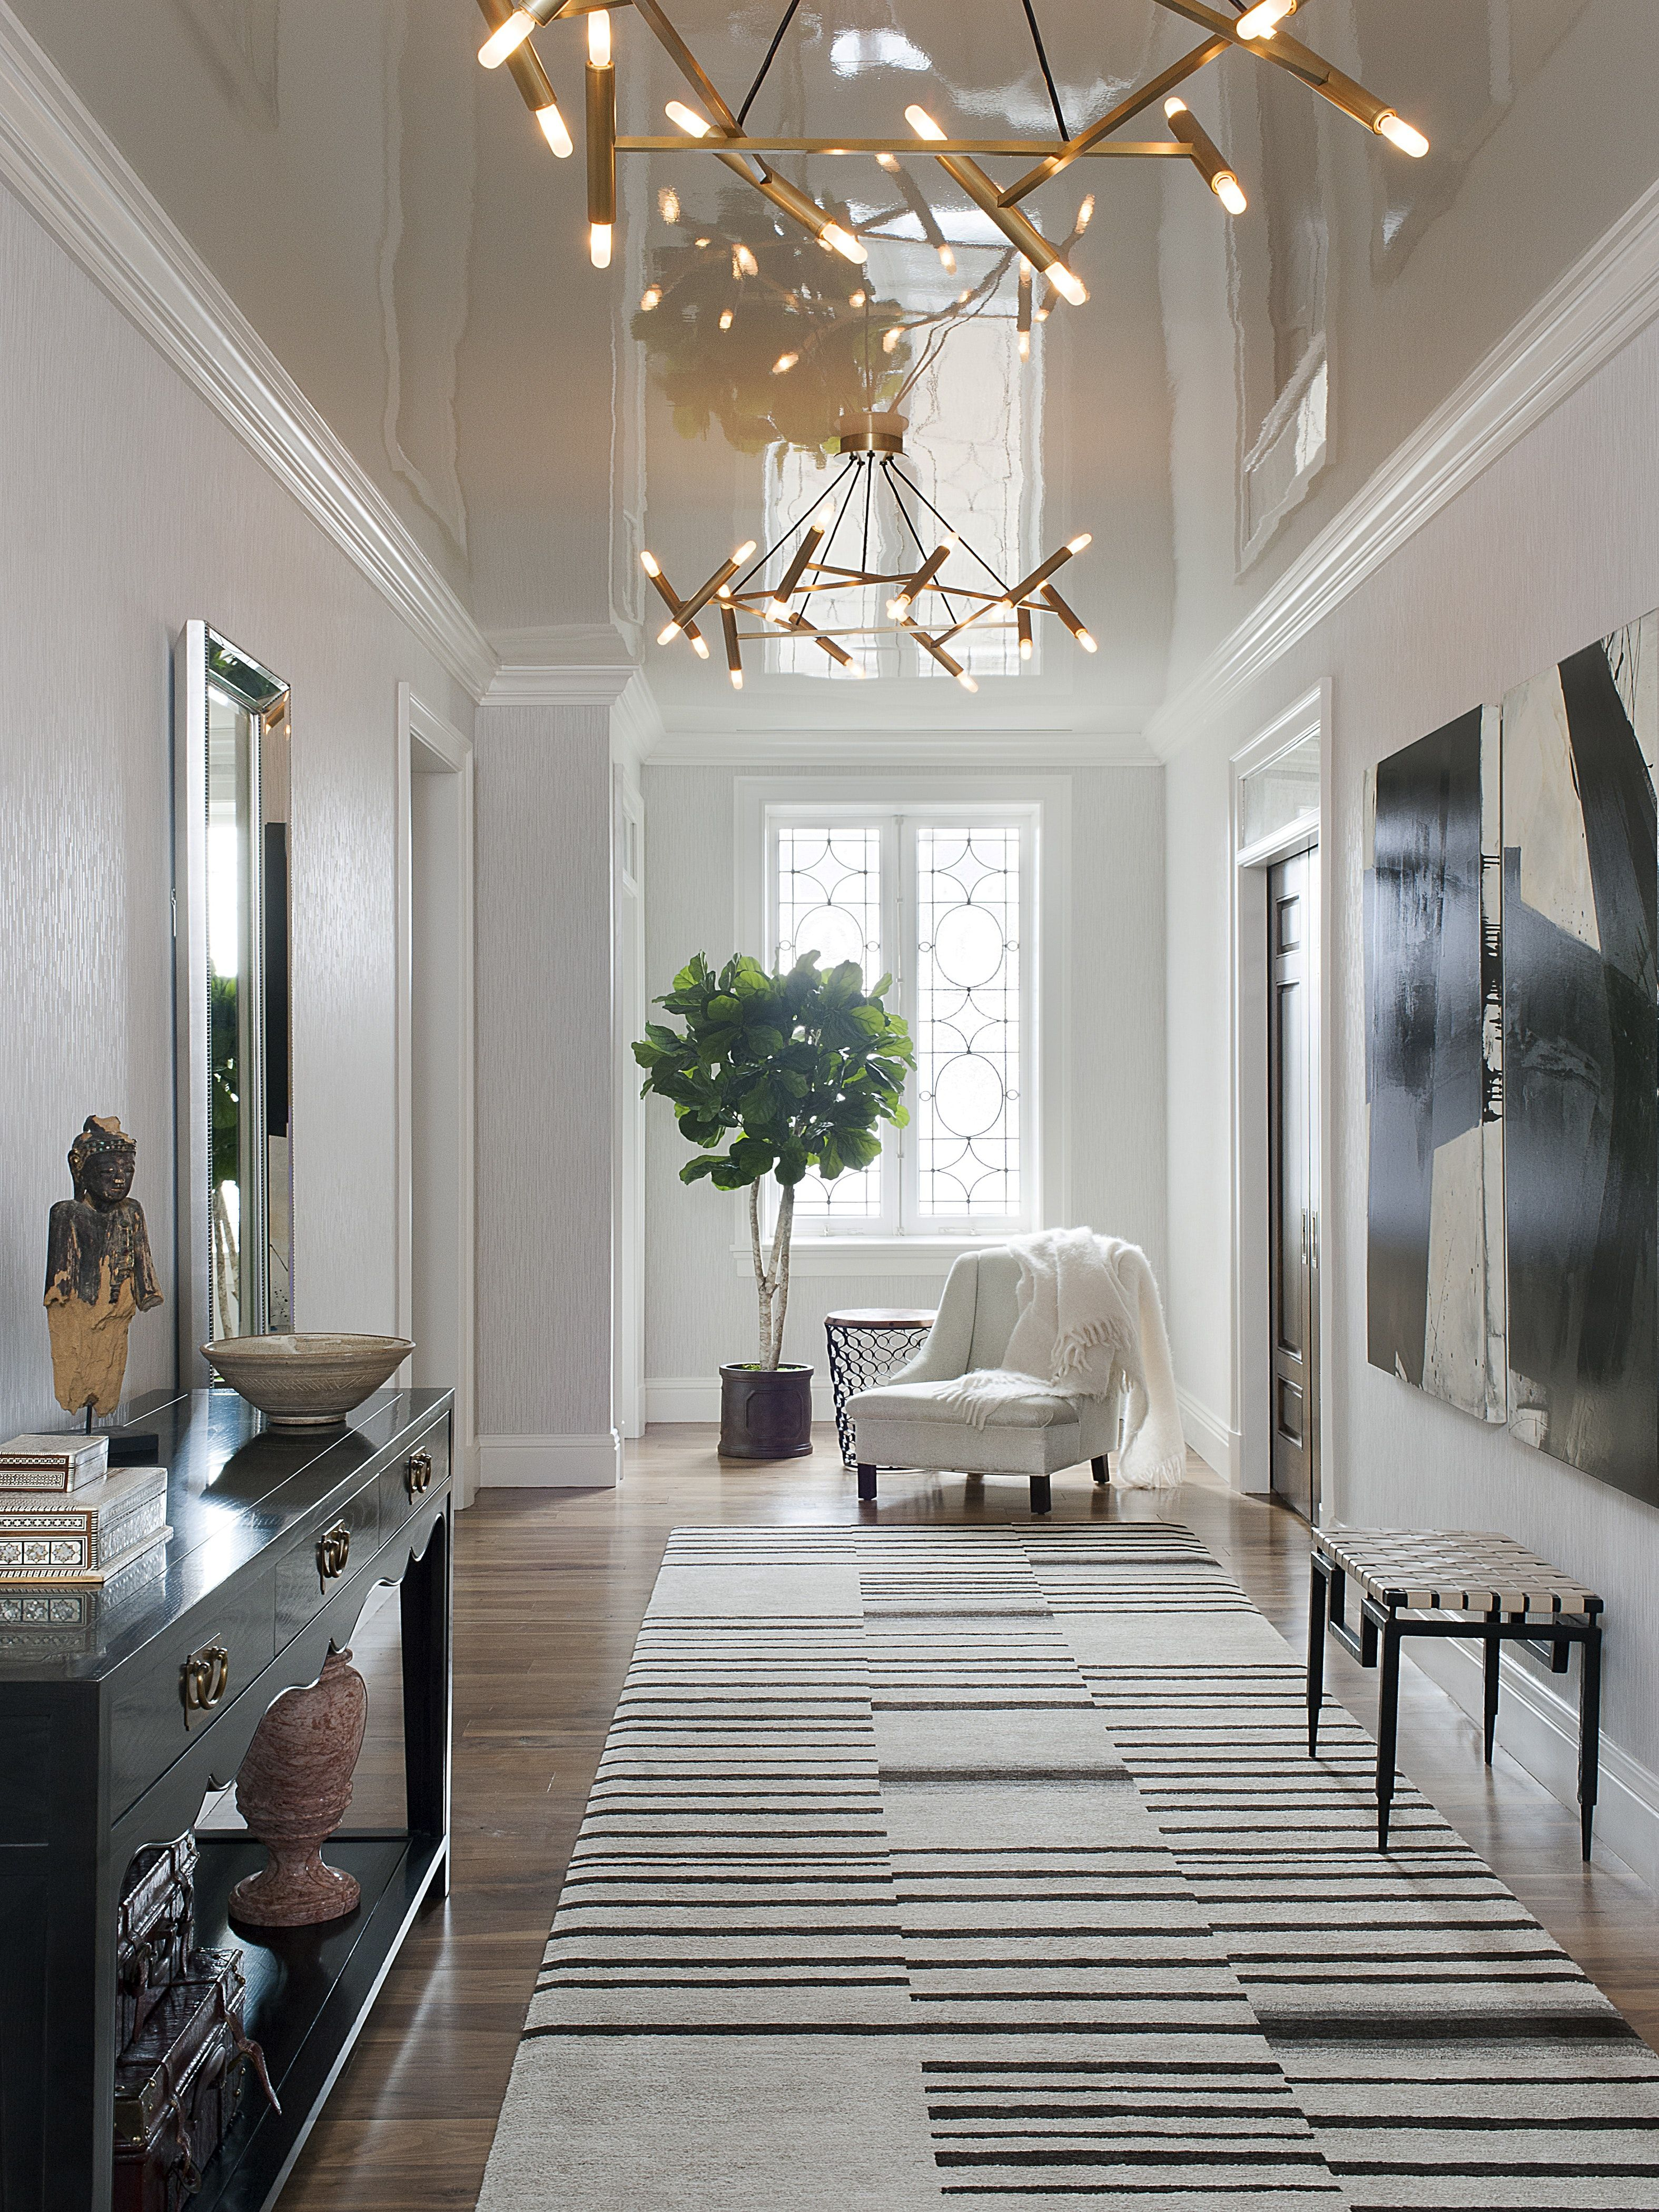 A High Gloss Lacquered Ceiling Reflects The Dramatic Entry Gallery